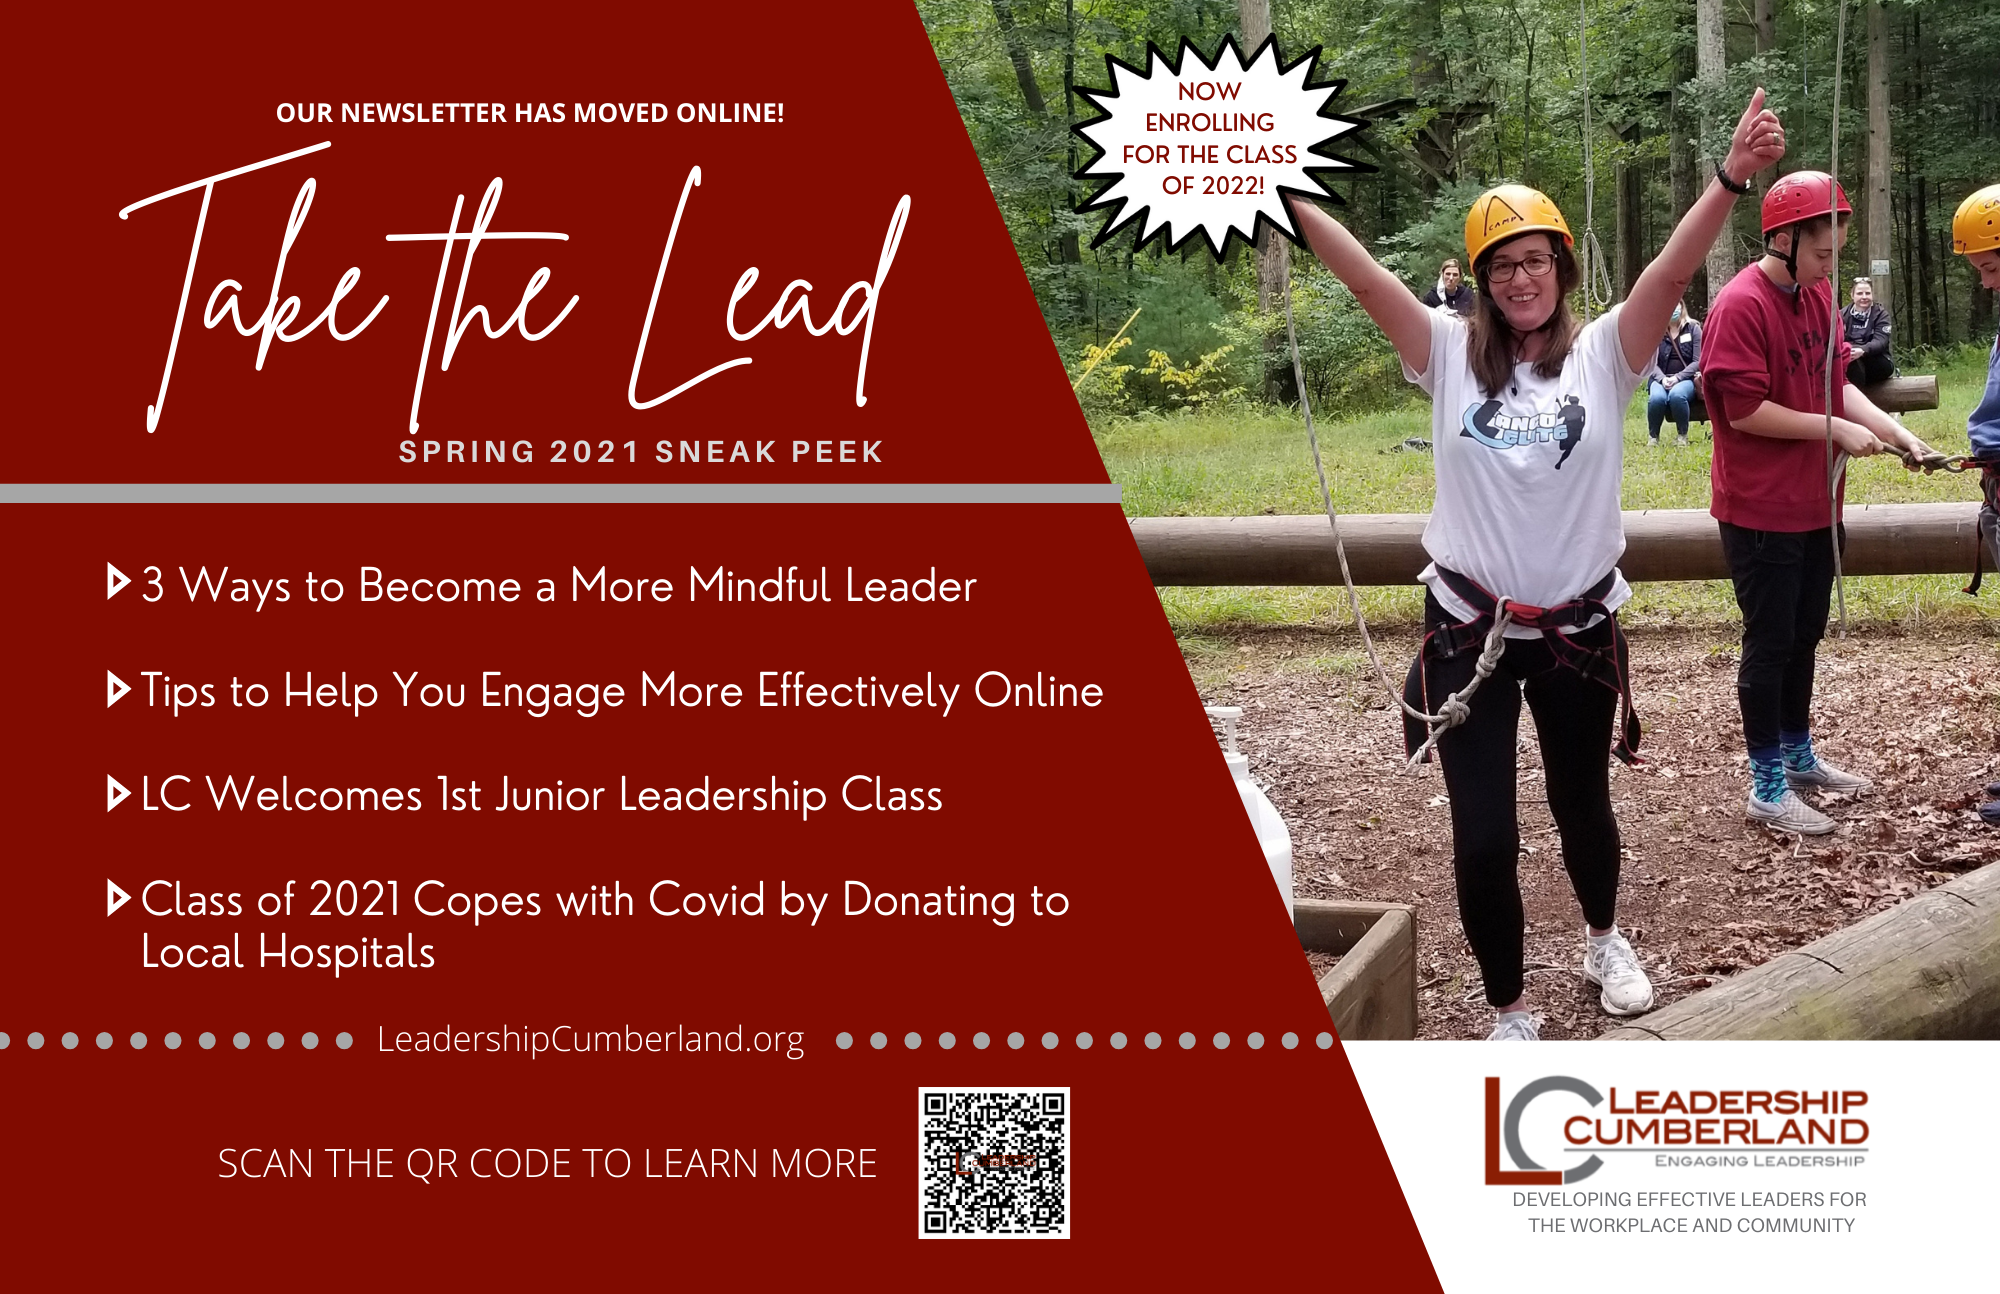 Take the Lead Spring 2021